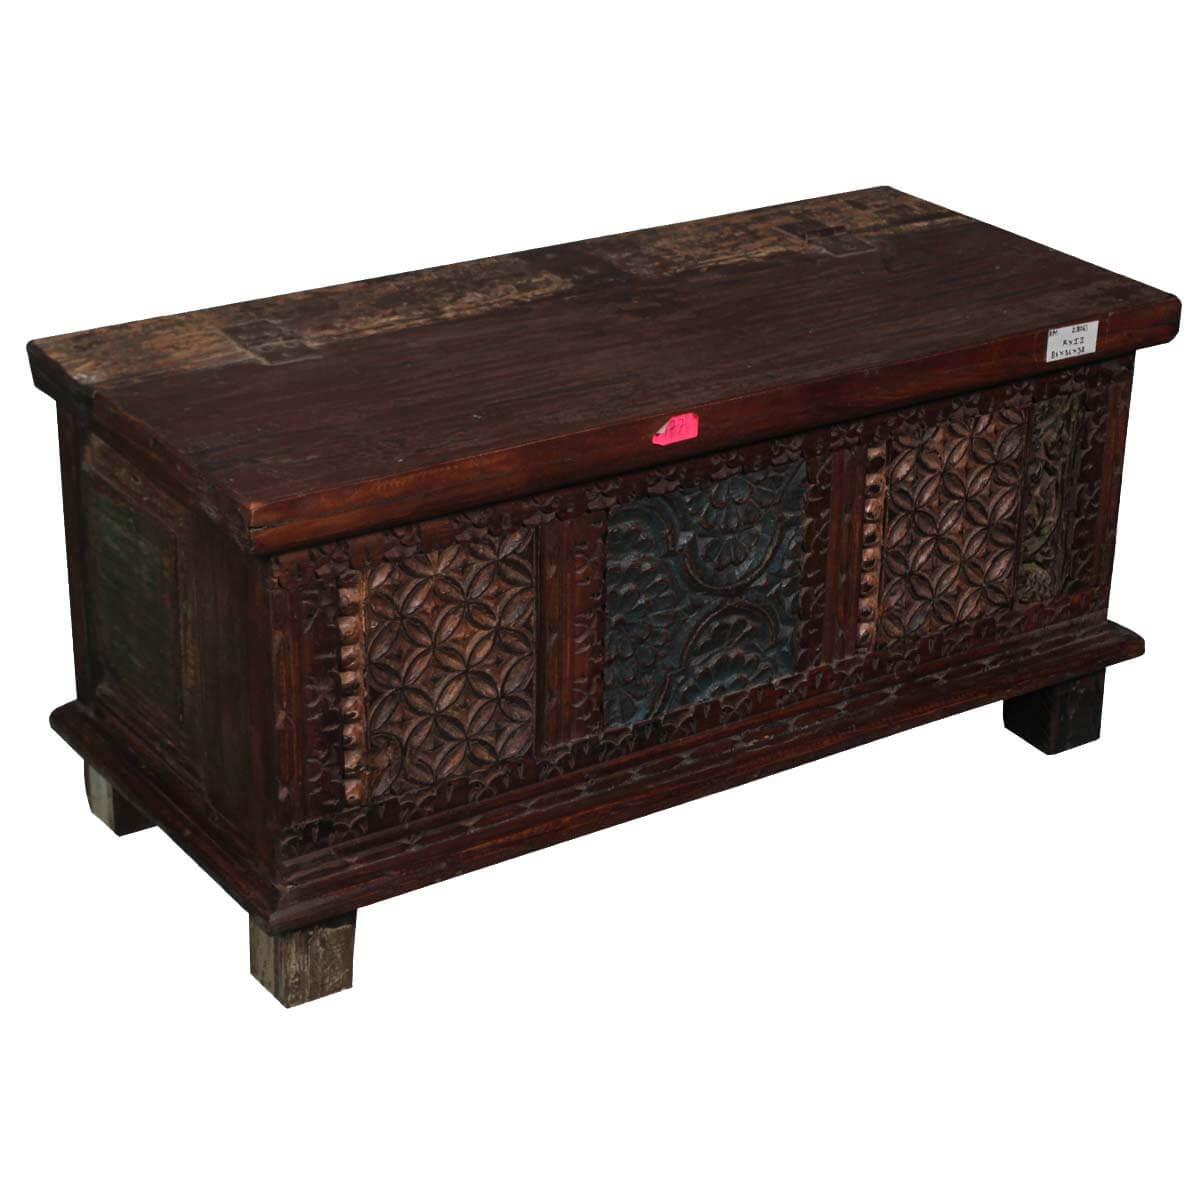 Hand carved rustic reclaimed wood storage chest trunk Coffee table chest with storage